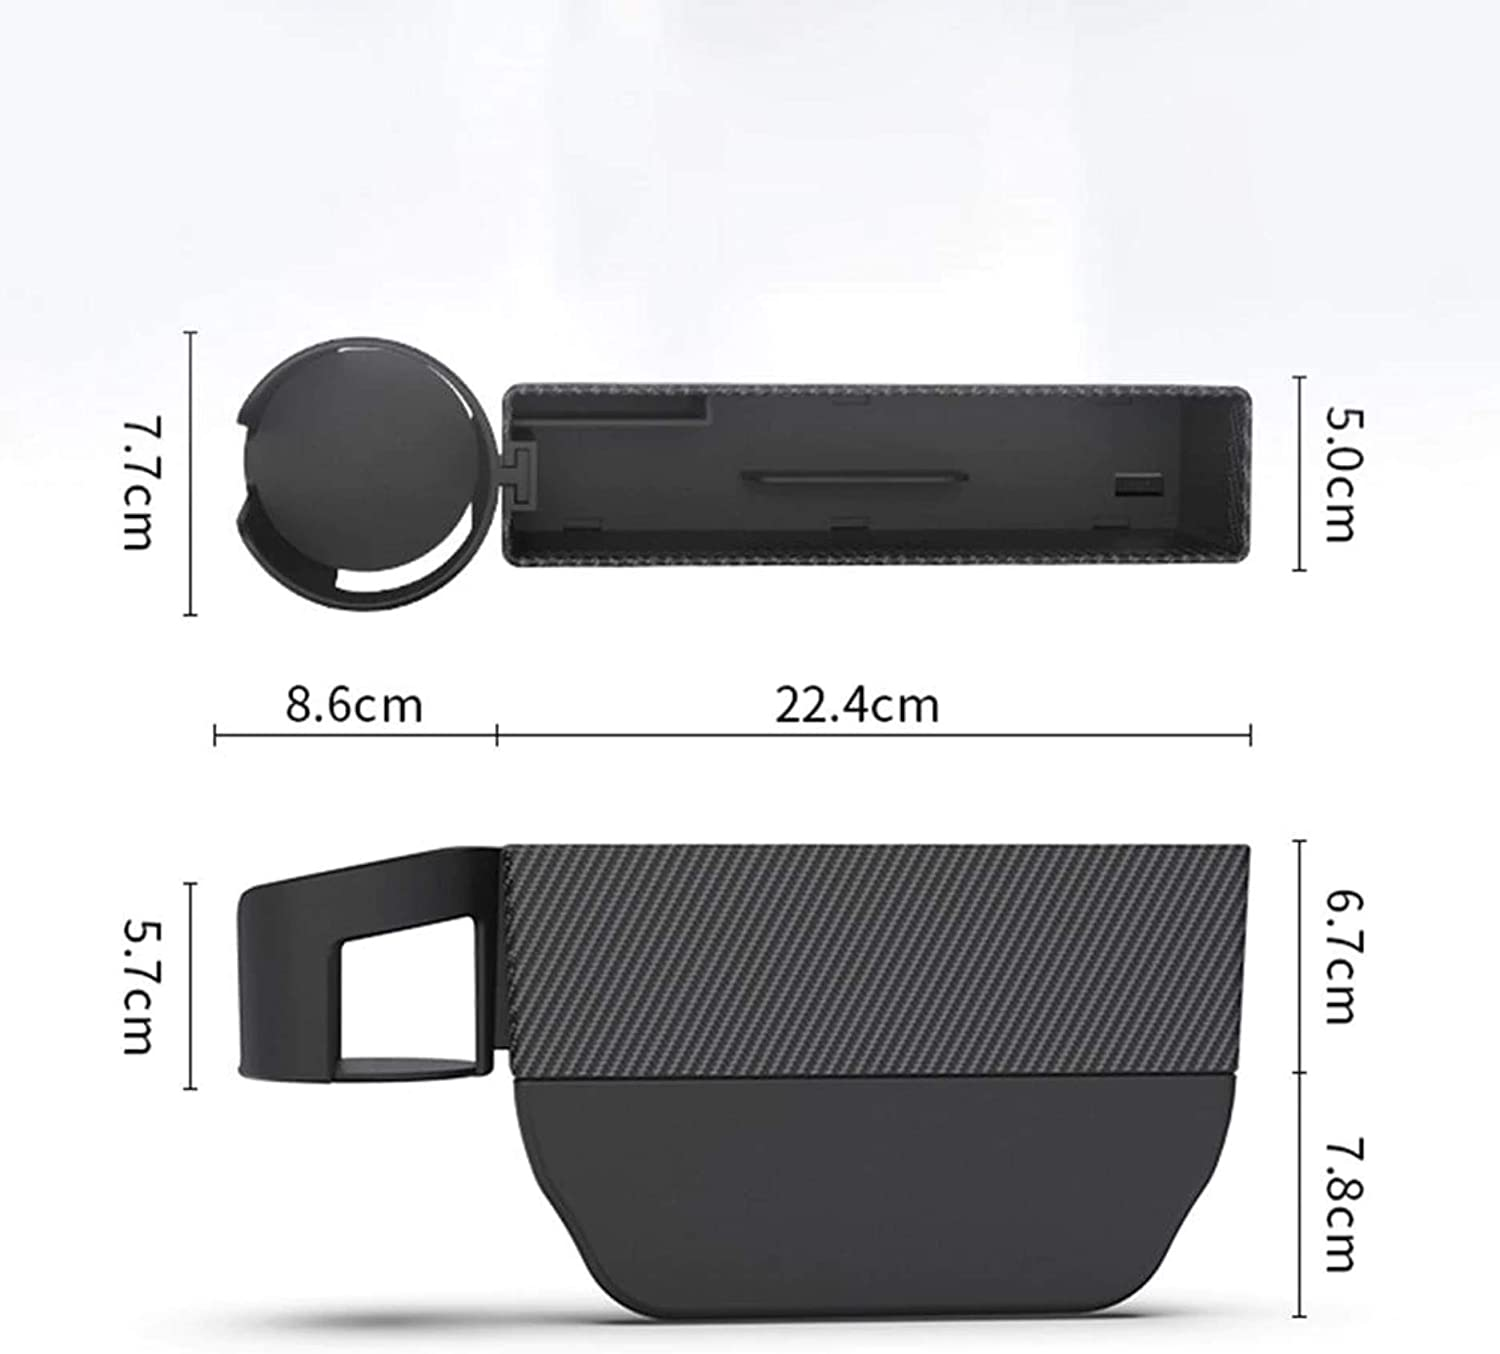 Car Seat Pockets Car Seat Gap Filler Premium Leather 2 Pack Upgraded Version Car Accessories Interior Car Seat Gap Organizer Carbon Fiber Look Car Accessories for Women and Girls